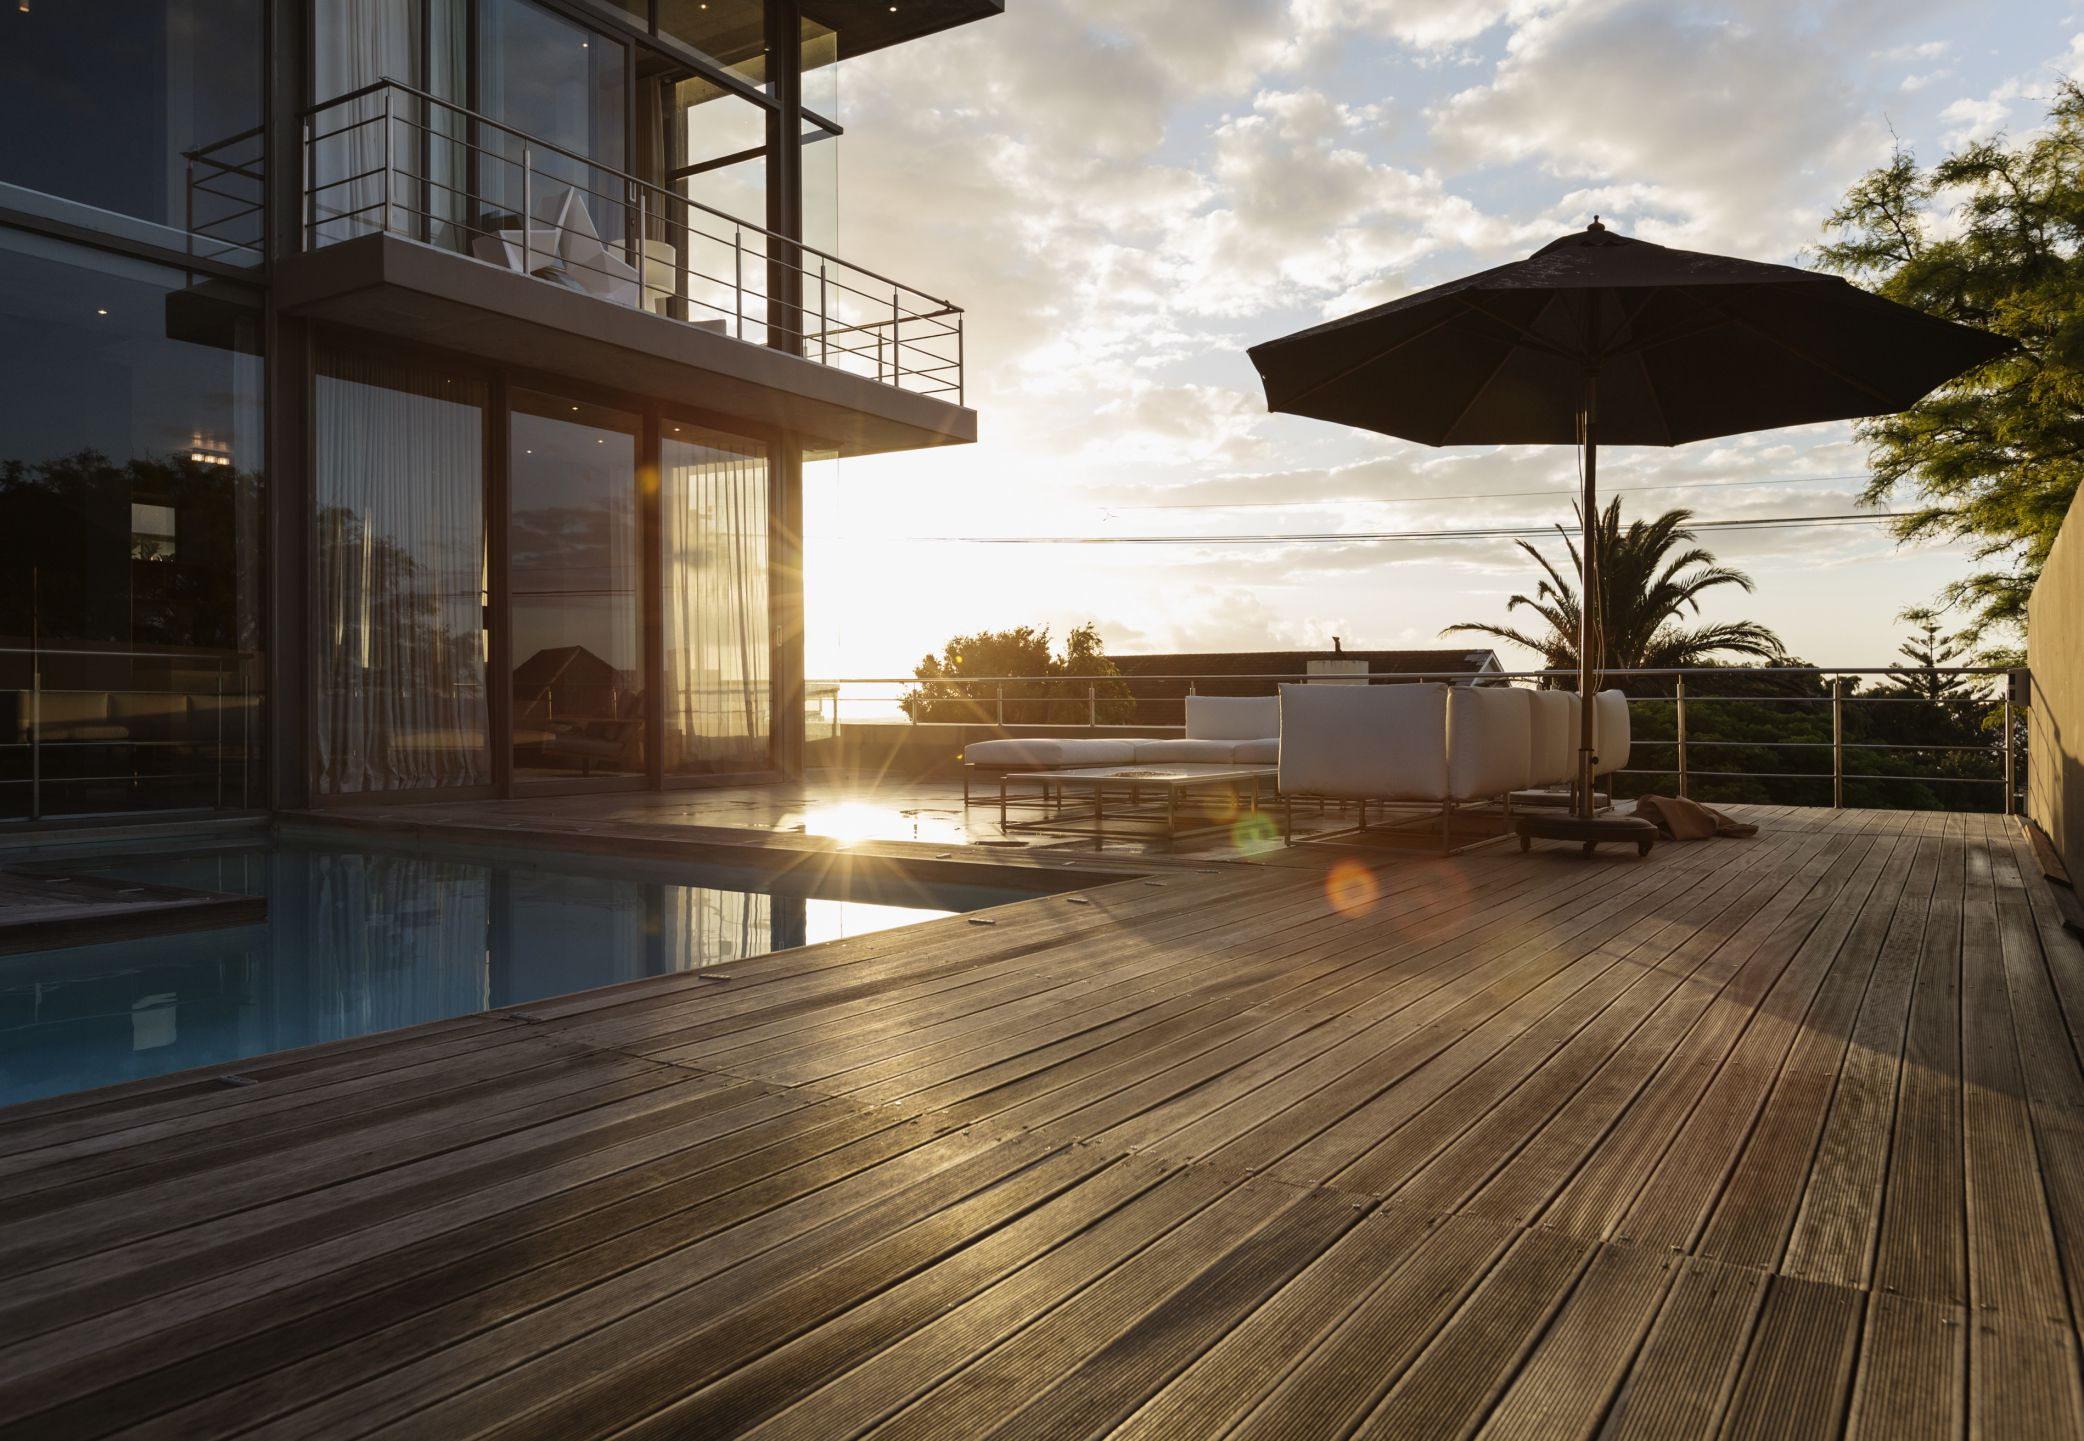 Compare Deck Materials: Wood, Wood-Composite, and Plastic